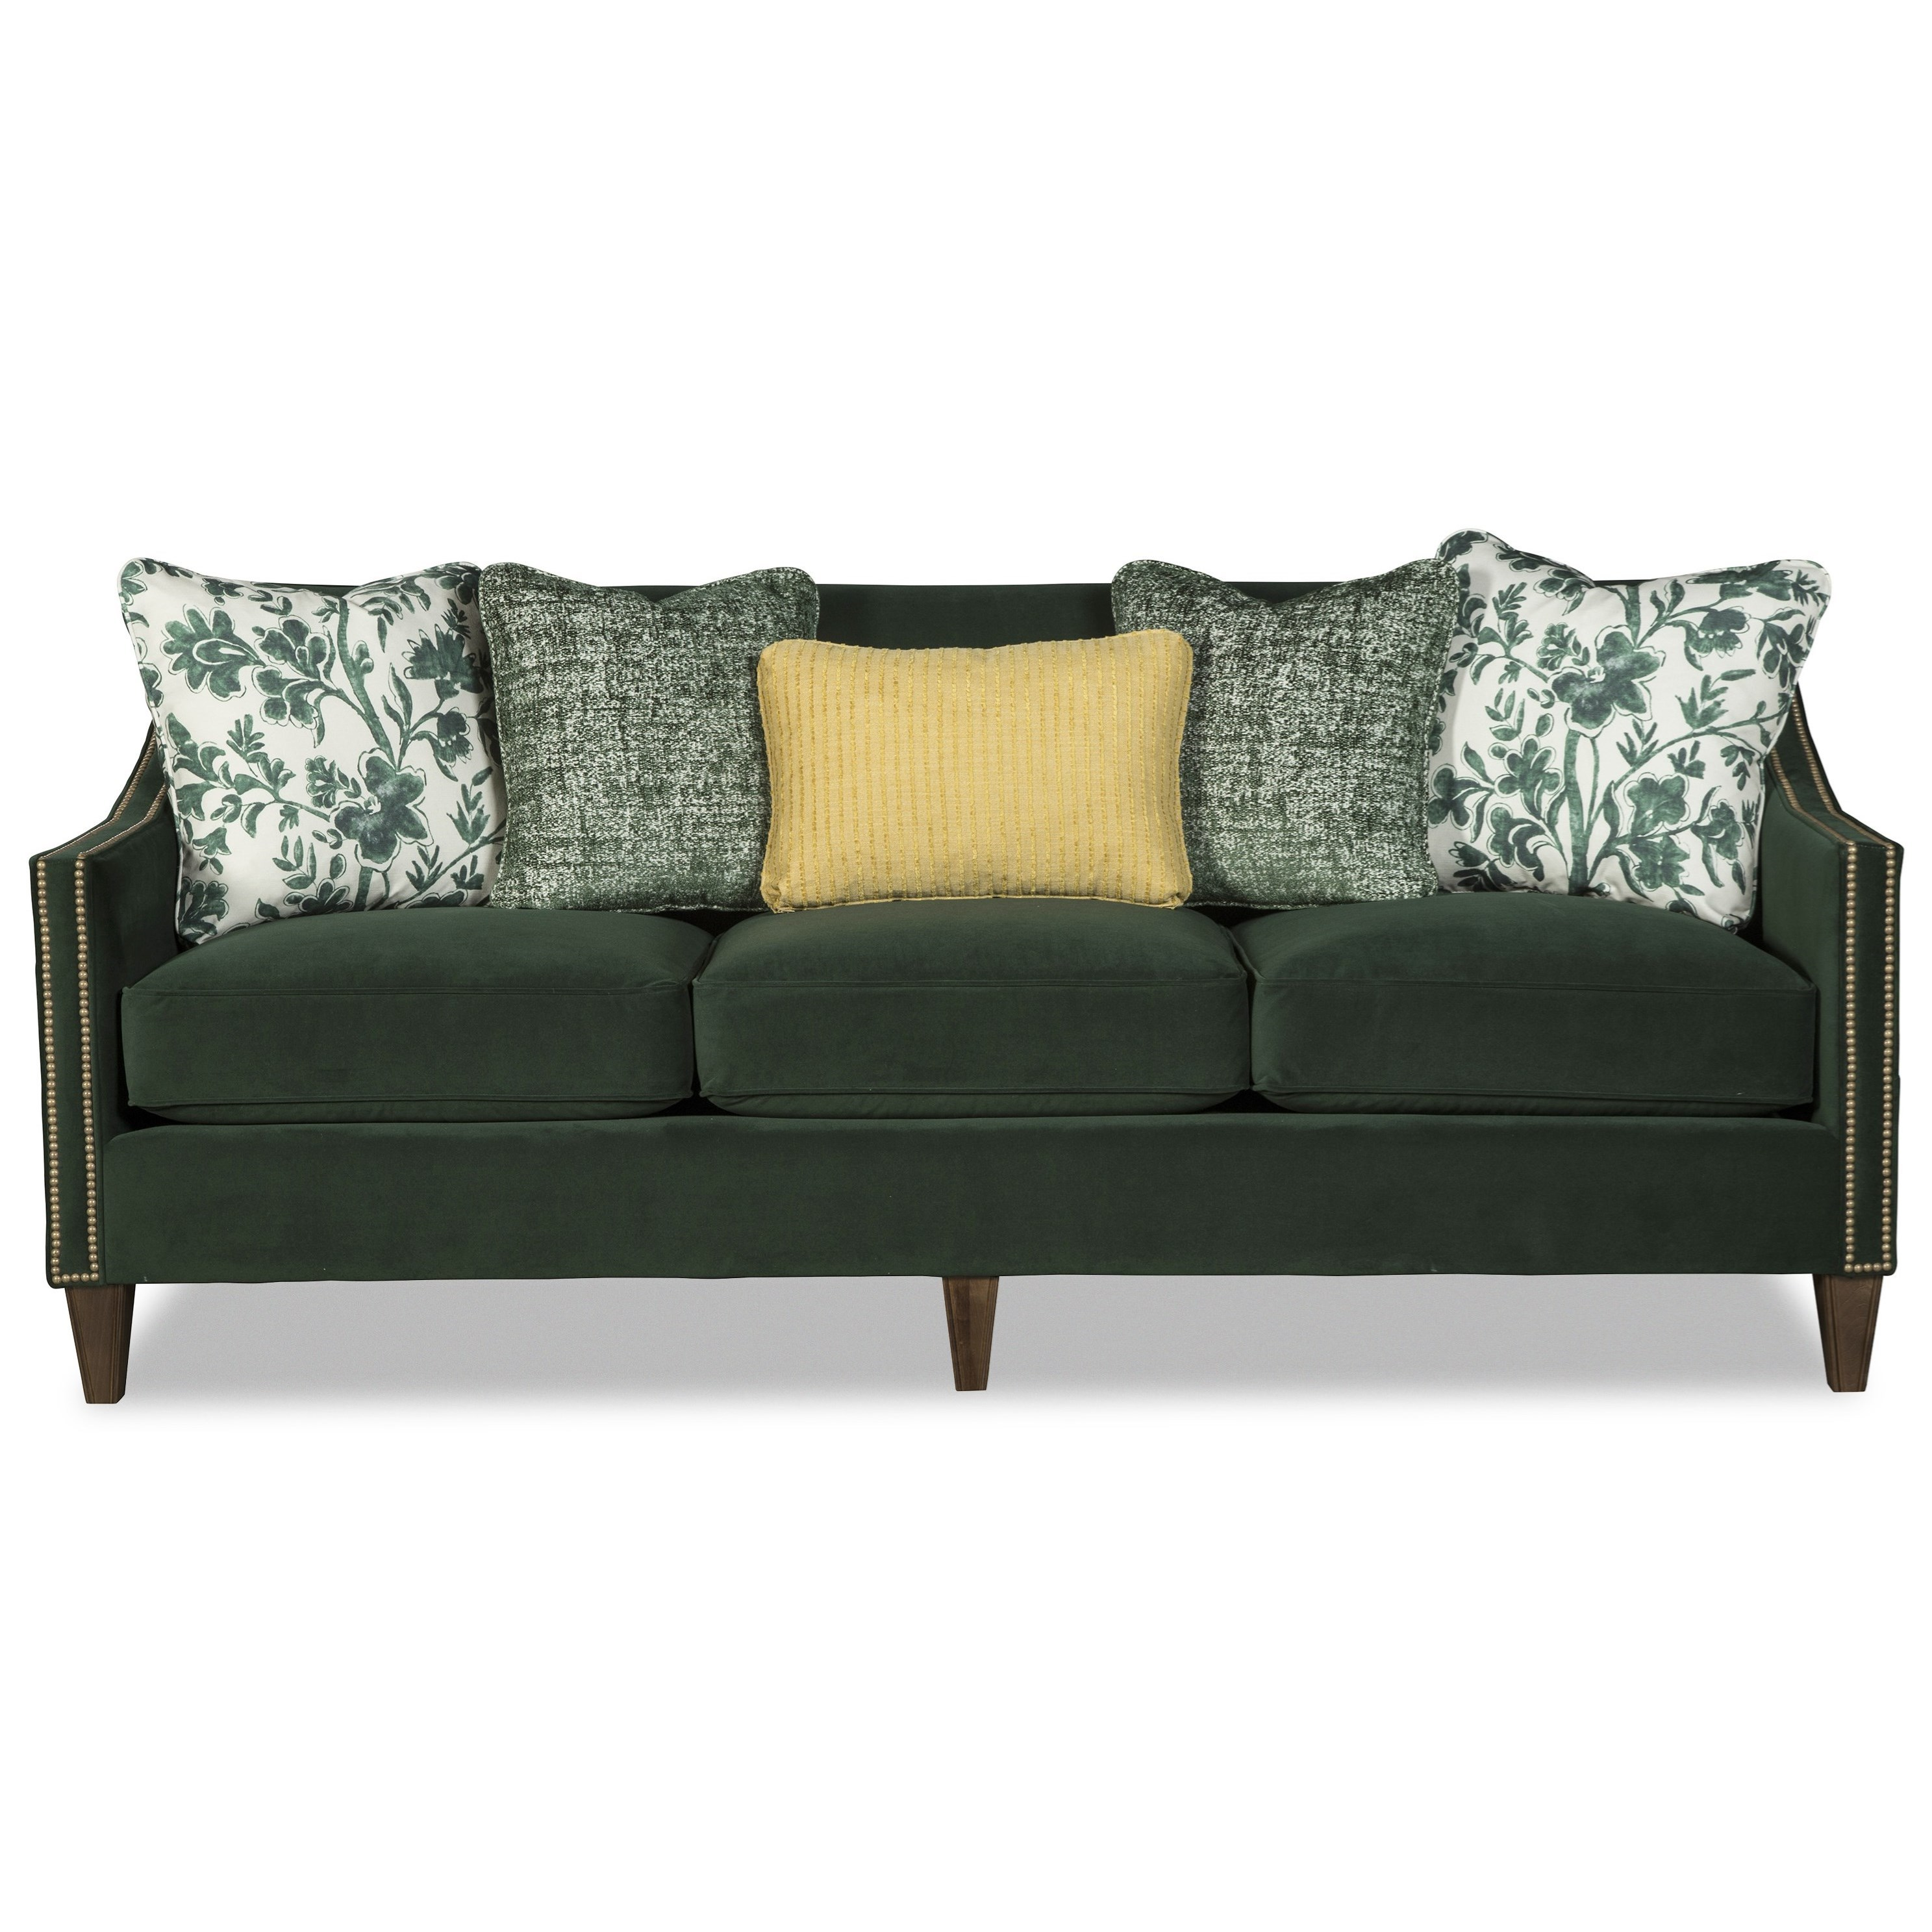 703950 Sofa by Craftmaster at Home Collections Furniture